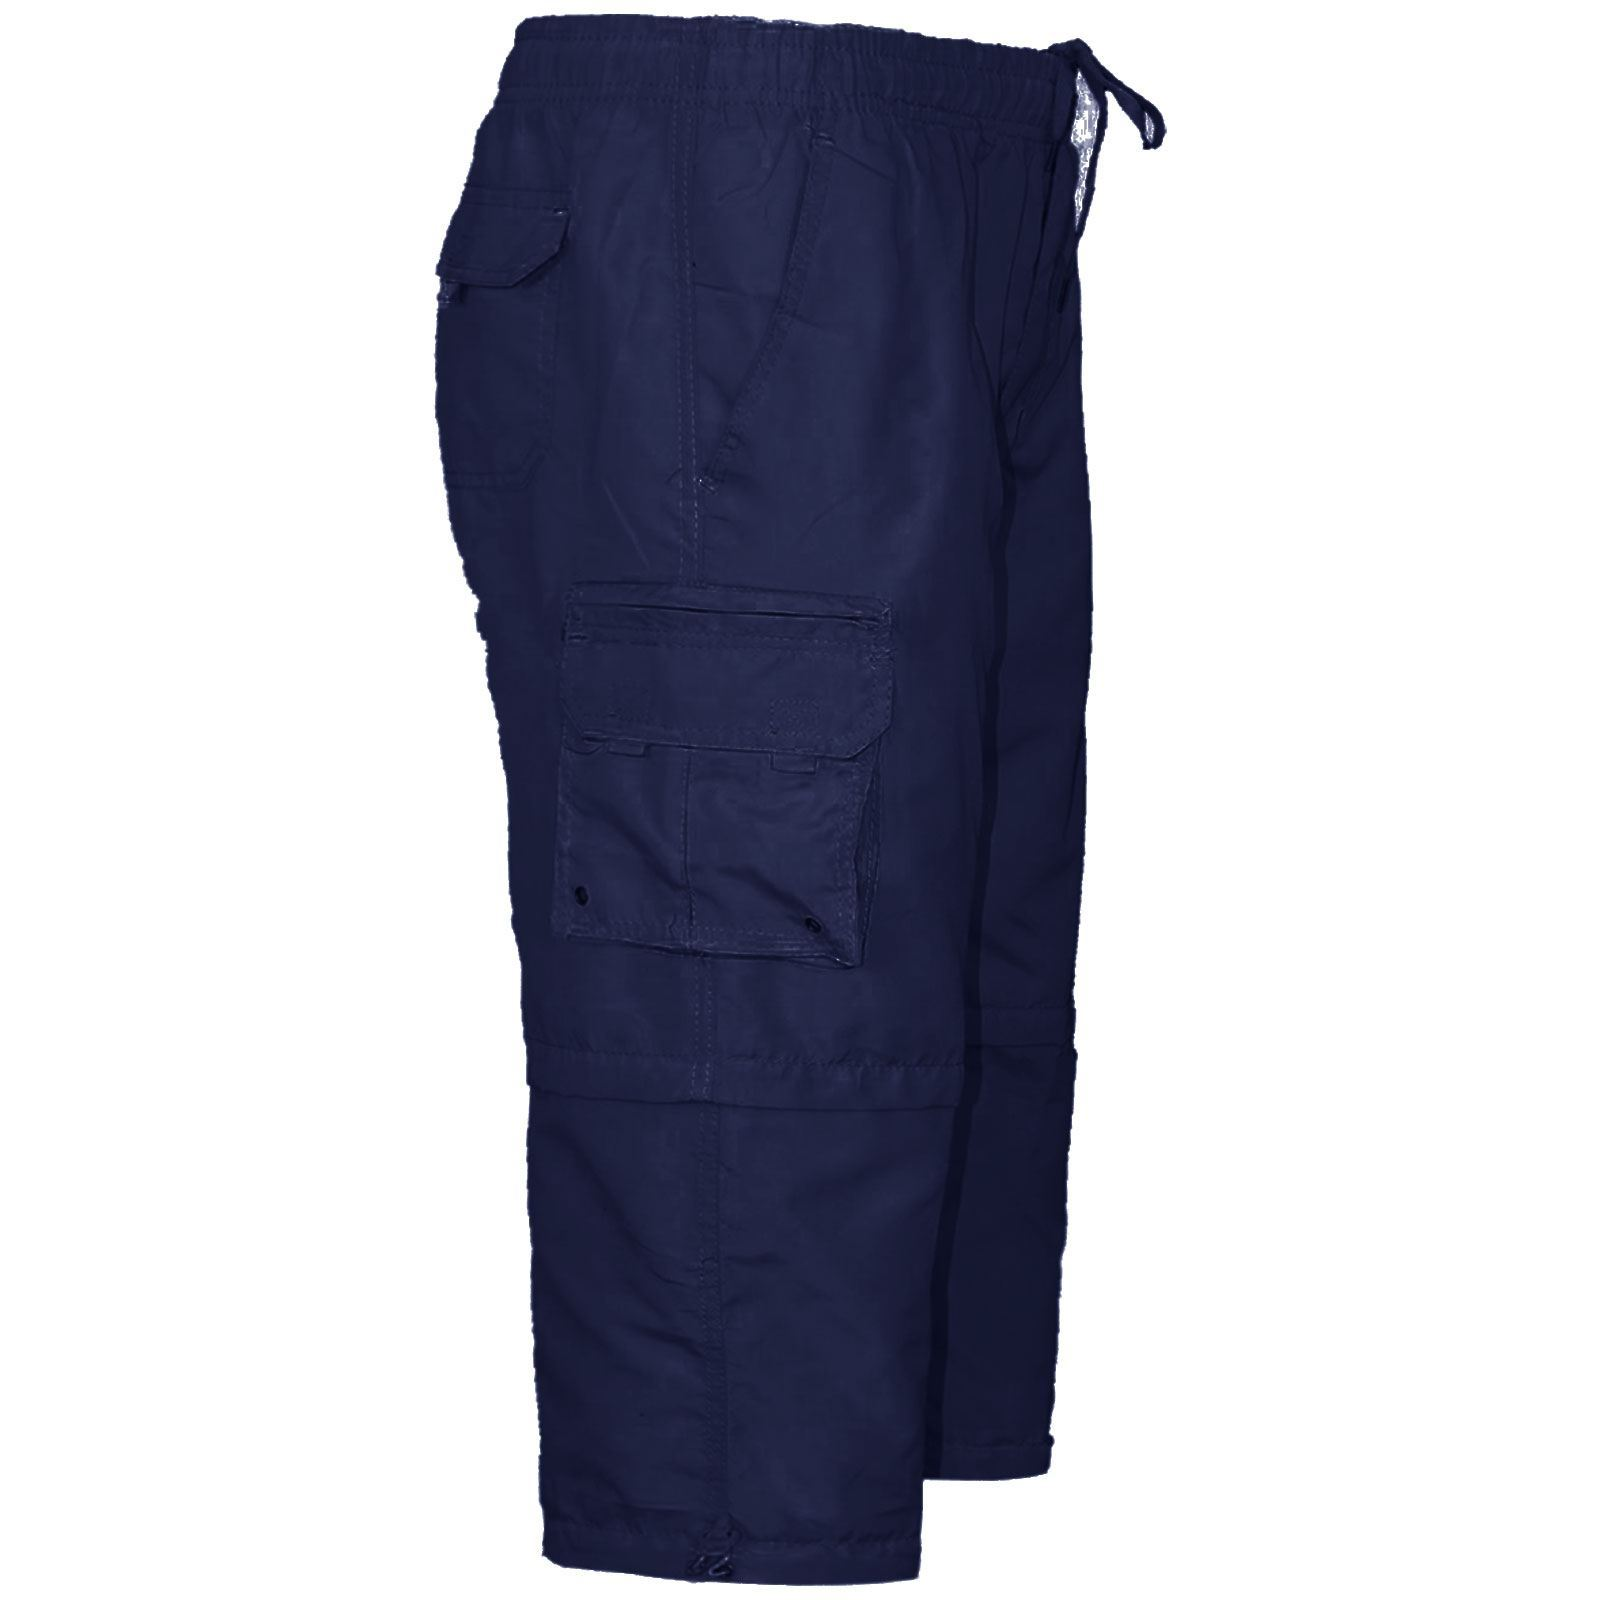 MENS 2 IN 1 ZIP OFF ELASTICATED SHORTS COTTON CARGO COMBAT SUMMER HOLIDAY PANTS